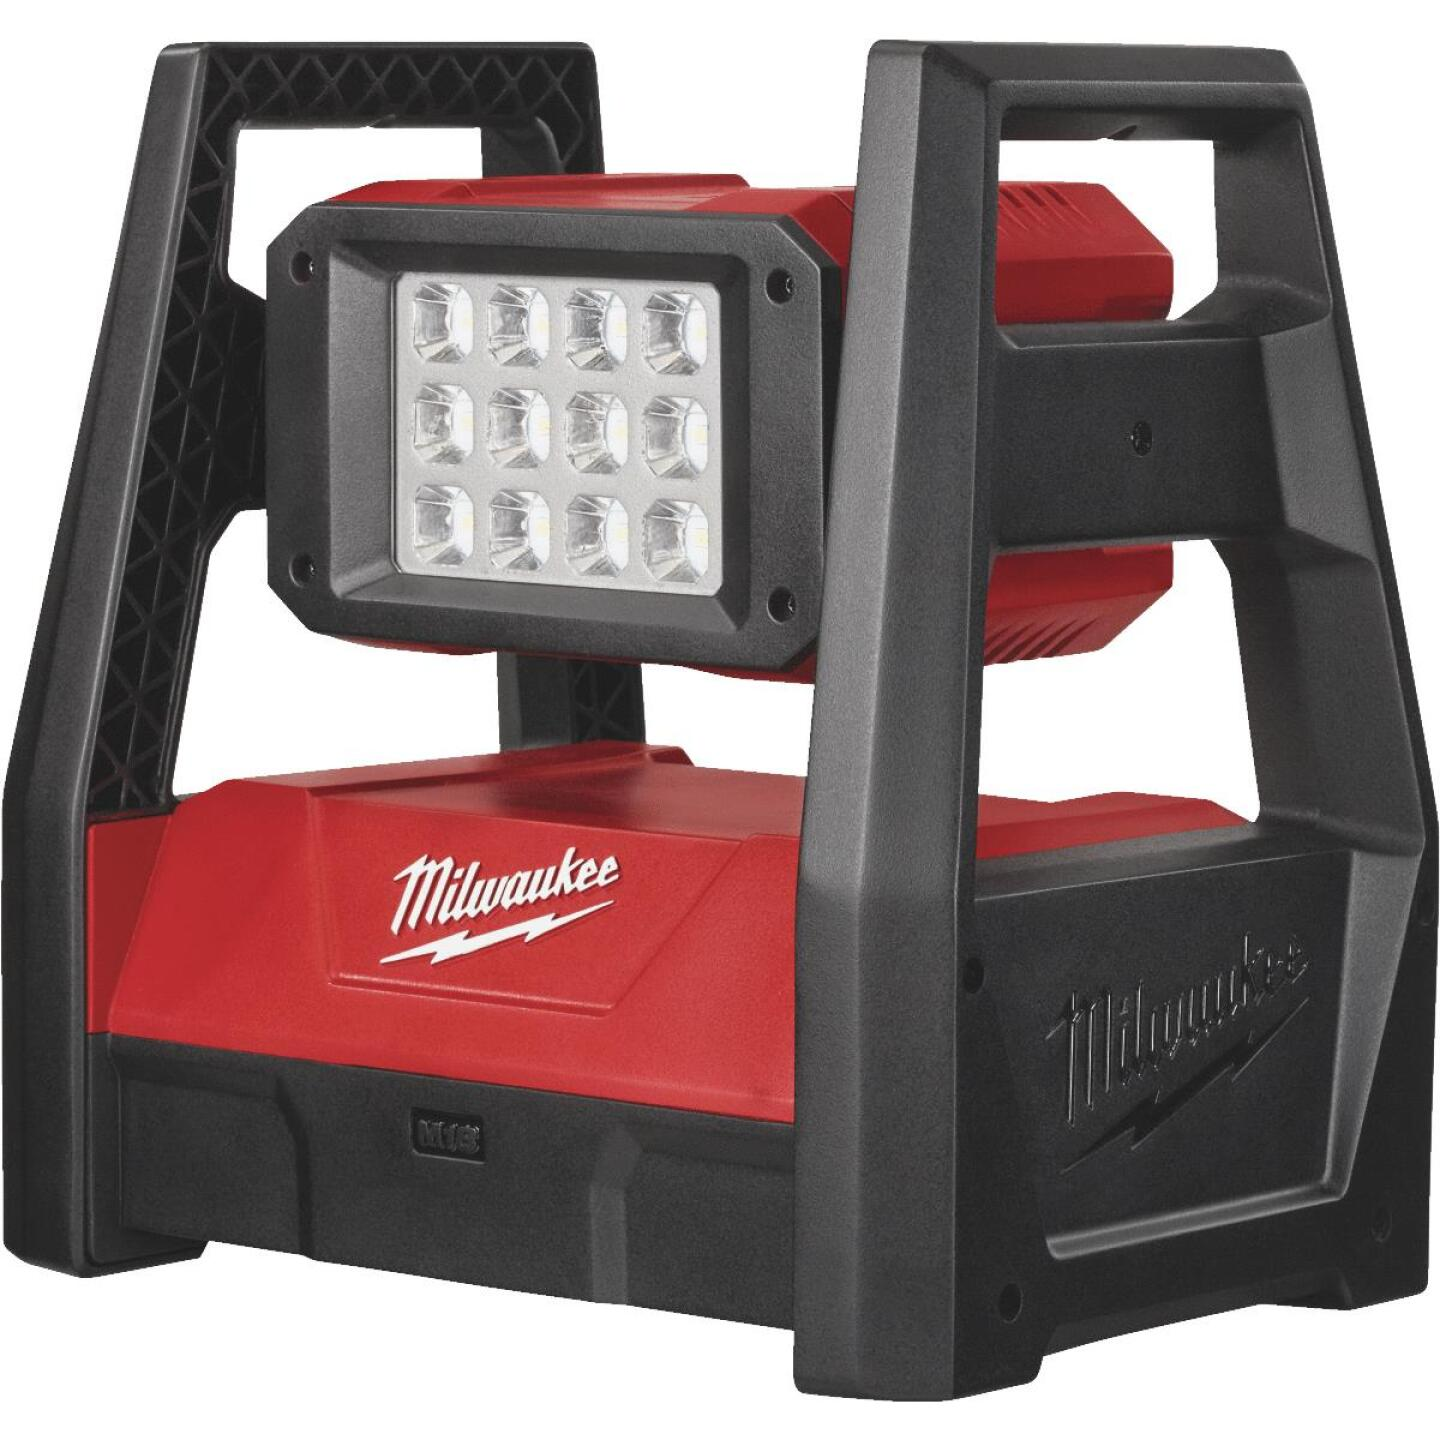 Milwaukee M18 ROVER 18 Volt Lithium-Ion LED Dual Power Corded/Cordless Work Light (Bare Tool) Image 2